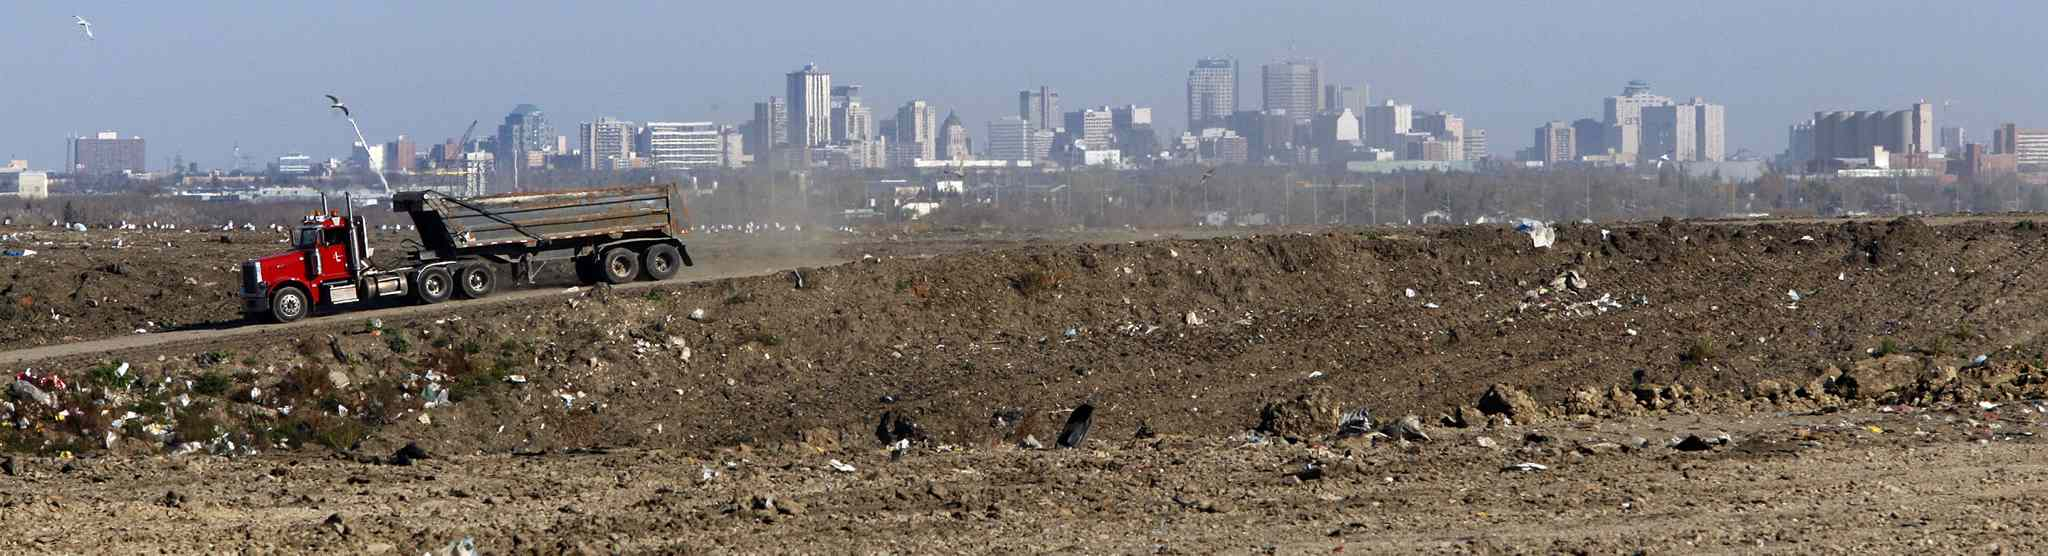 The province is putting together a game plan with the goal of reversing Manitoba's poor record of diverting waste from garbage dumps such as the Brady Road Landfill site (above).